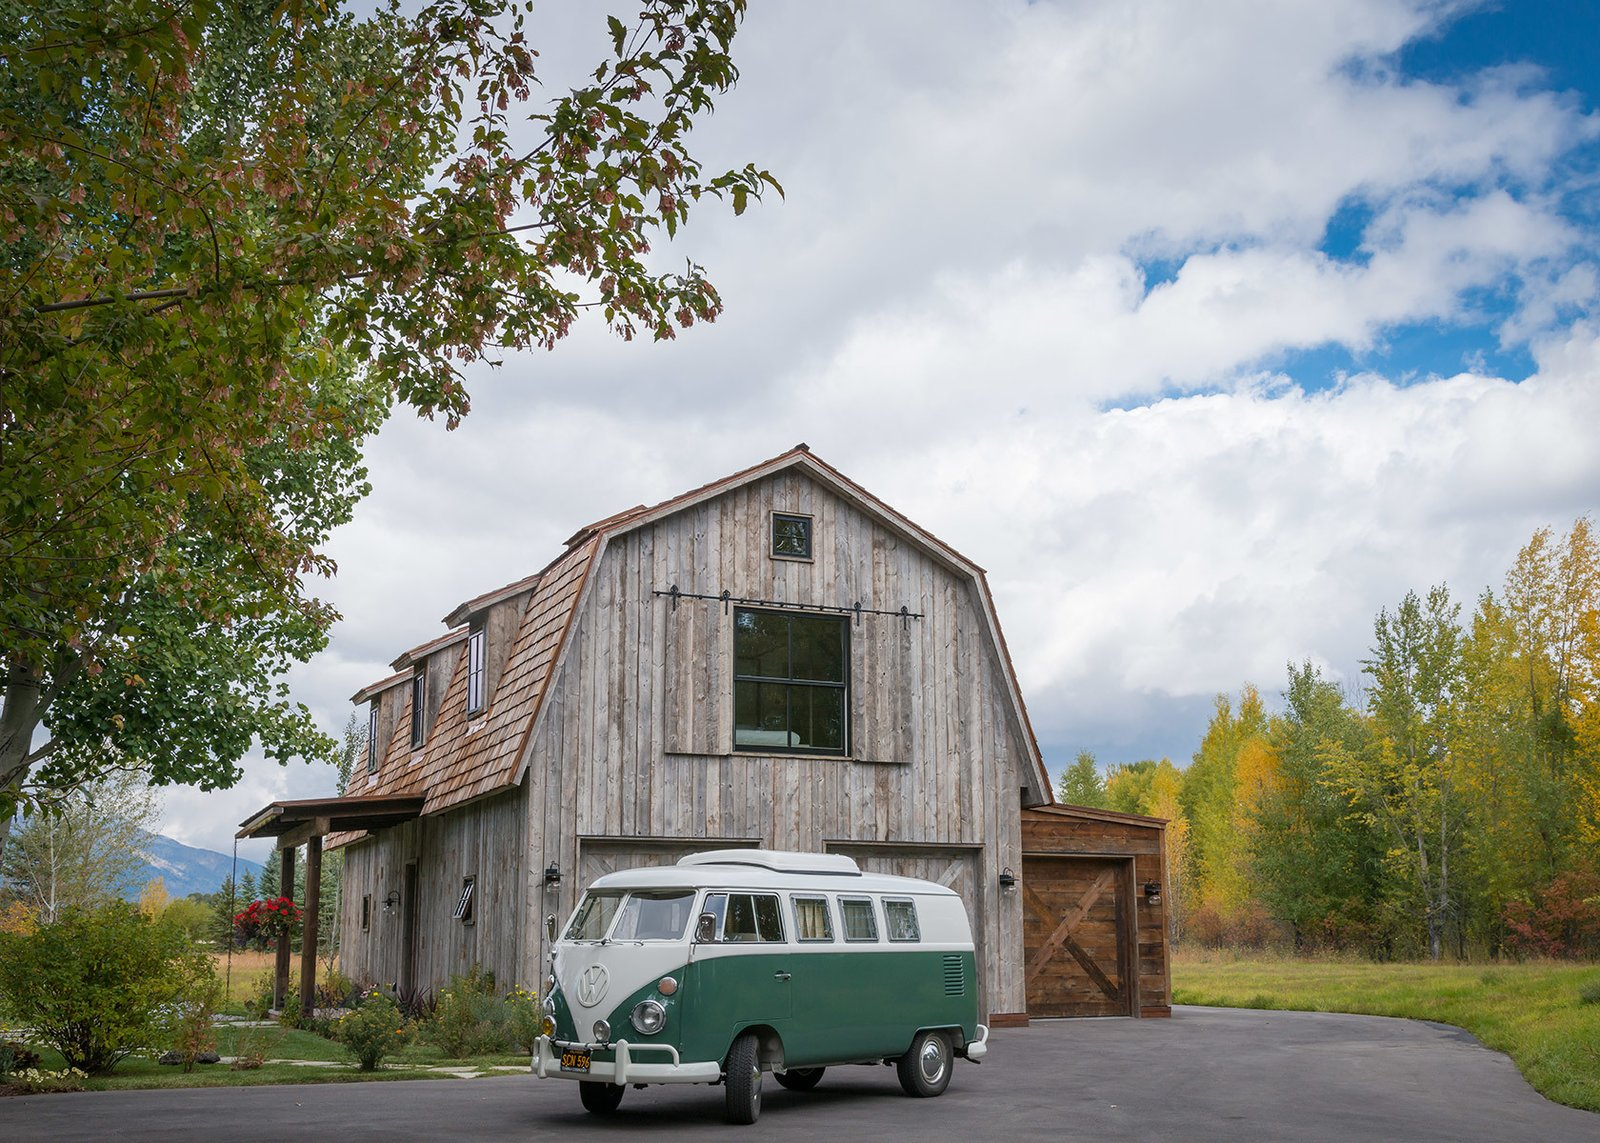 Outdoor, Side Yard, Trees, Shrubs, Flowers, Grass, Walkways, Field, and Woodland A classic VW bus in vintage colors shows both the scale and scope of The Barn and its surrounding scenery.  Photo 7 of 8 in A Guest Barn in Jackson, Wyoming, Fuses Modern and Rustic Elements